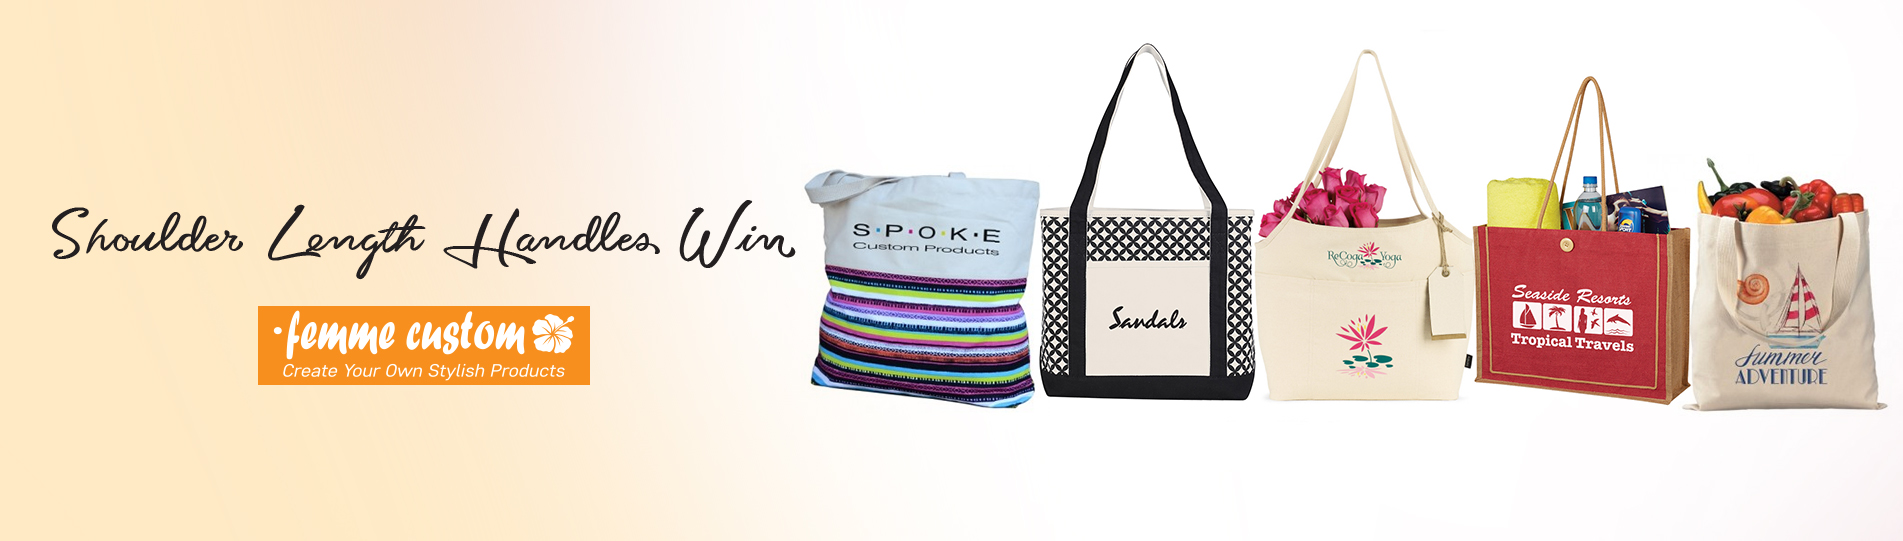 blog image promotional canvas tote